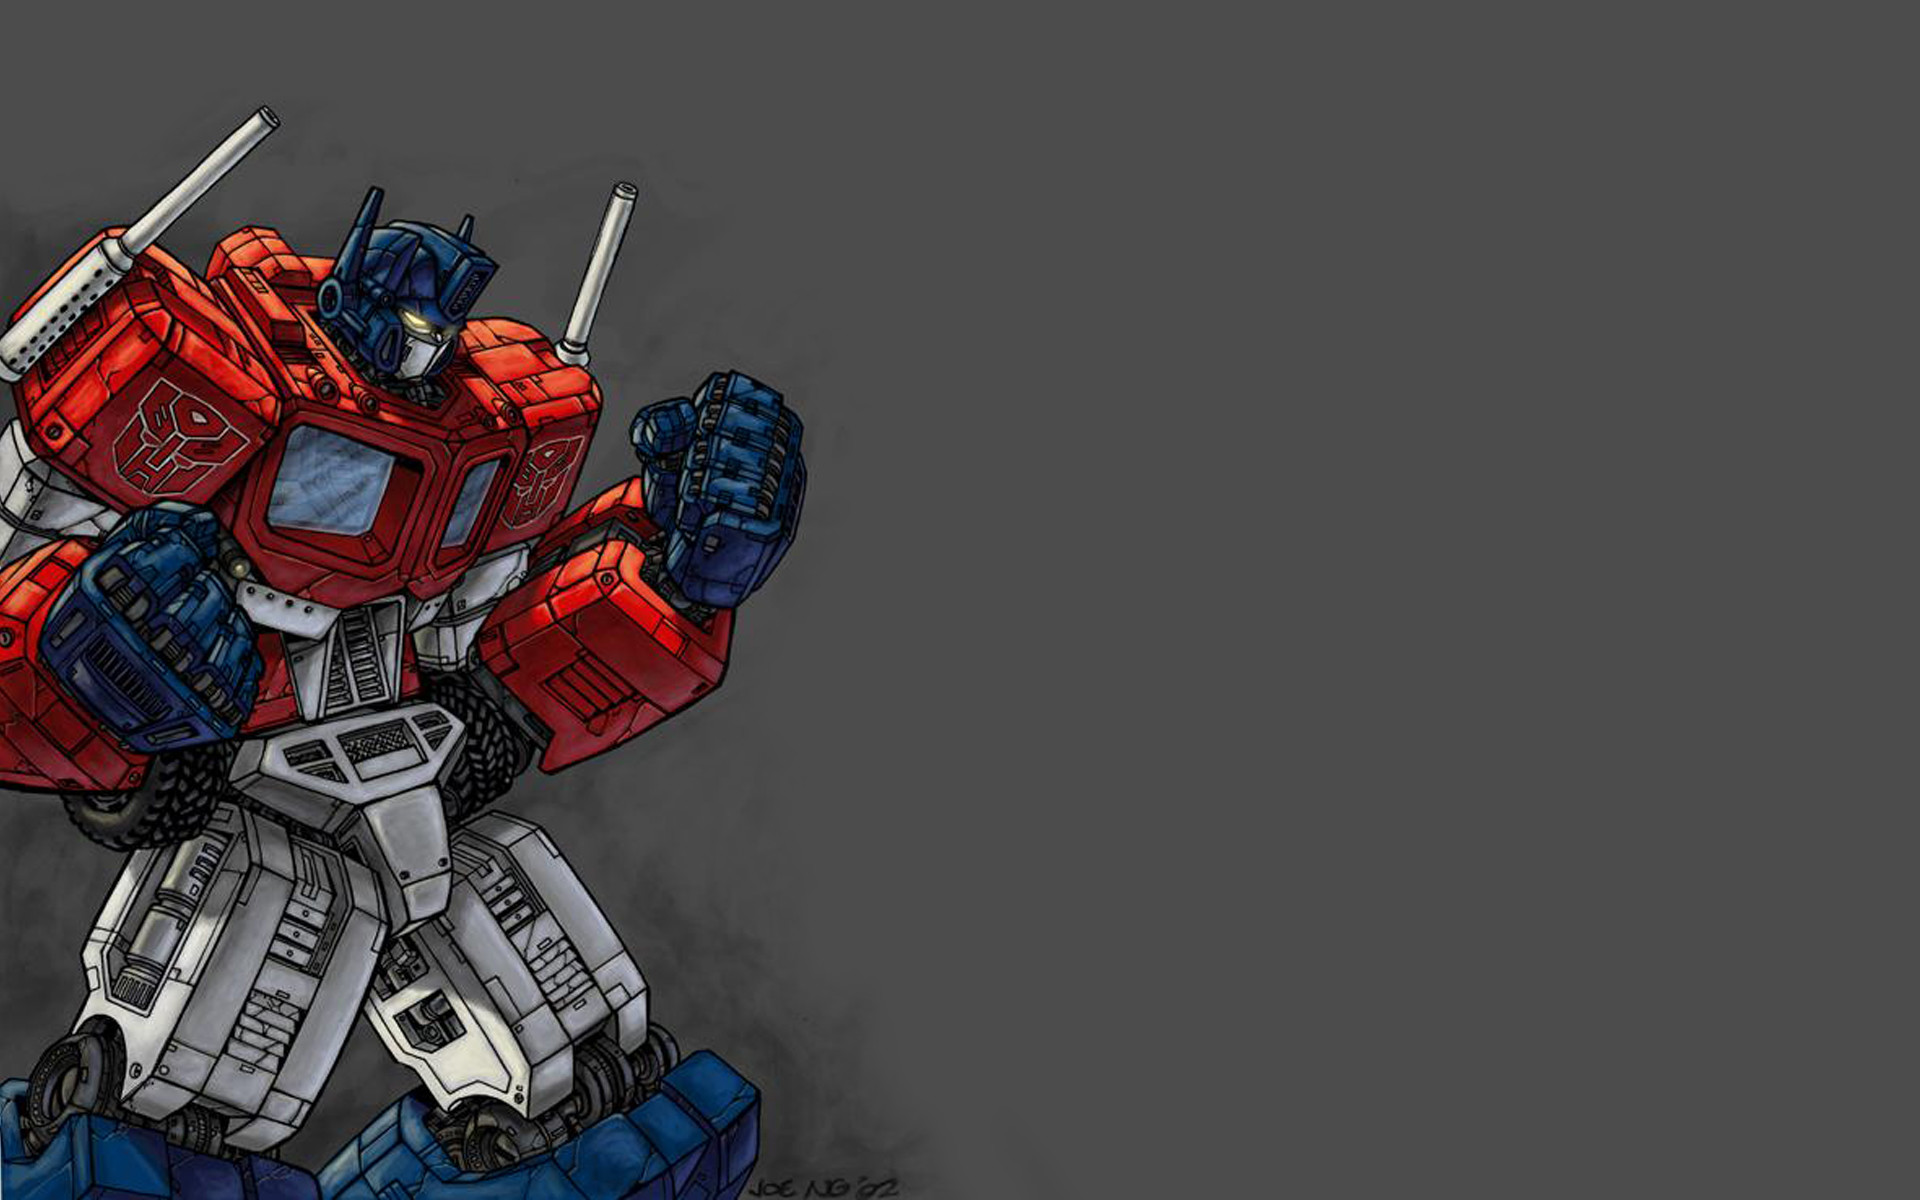 Sfondi wallpaper transformers